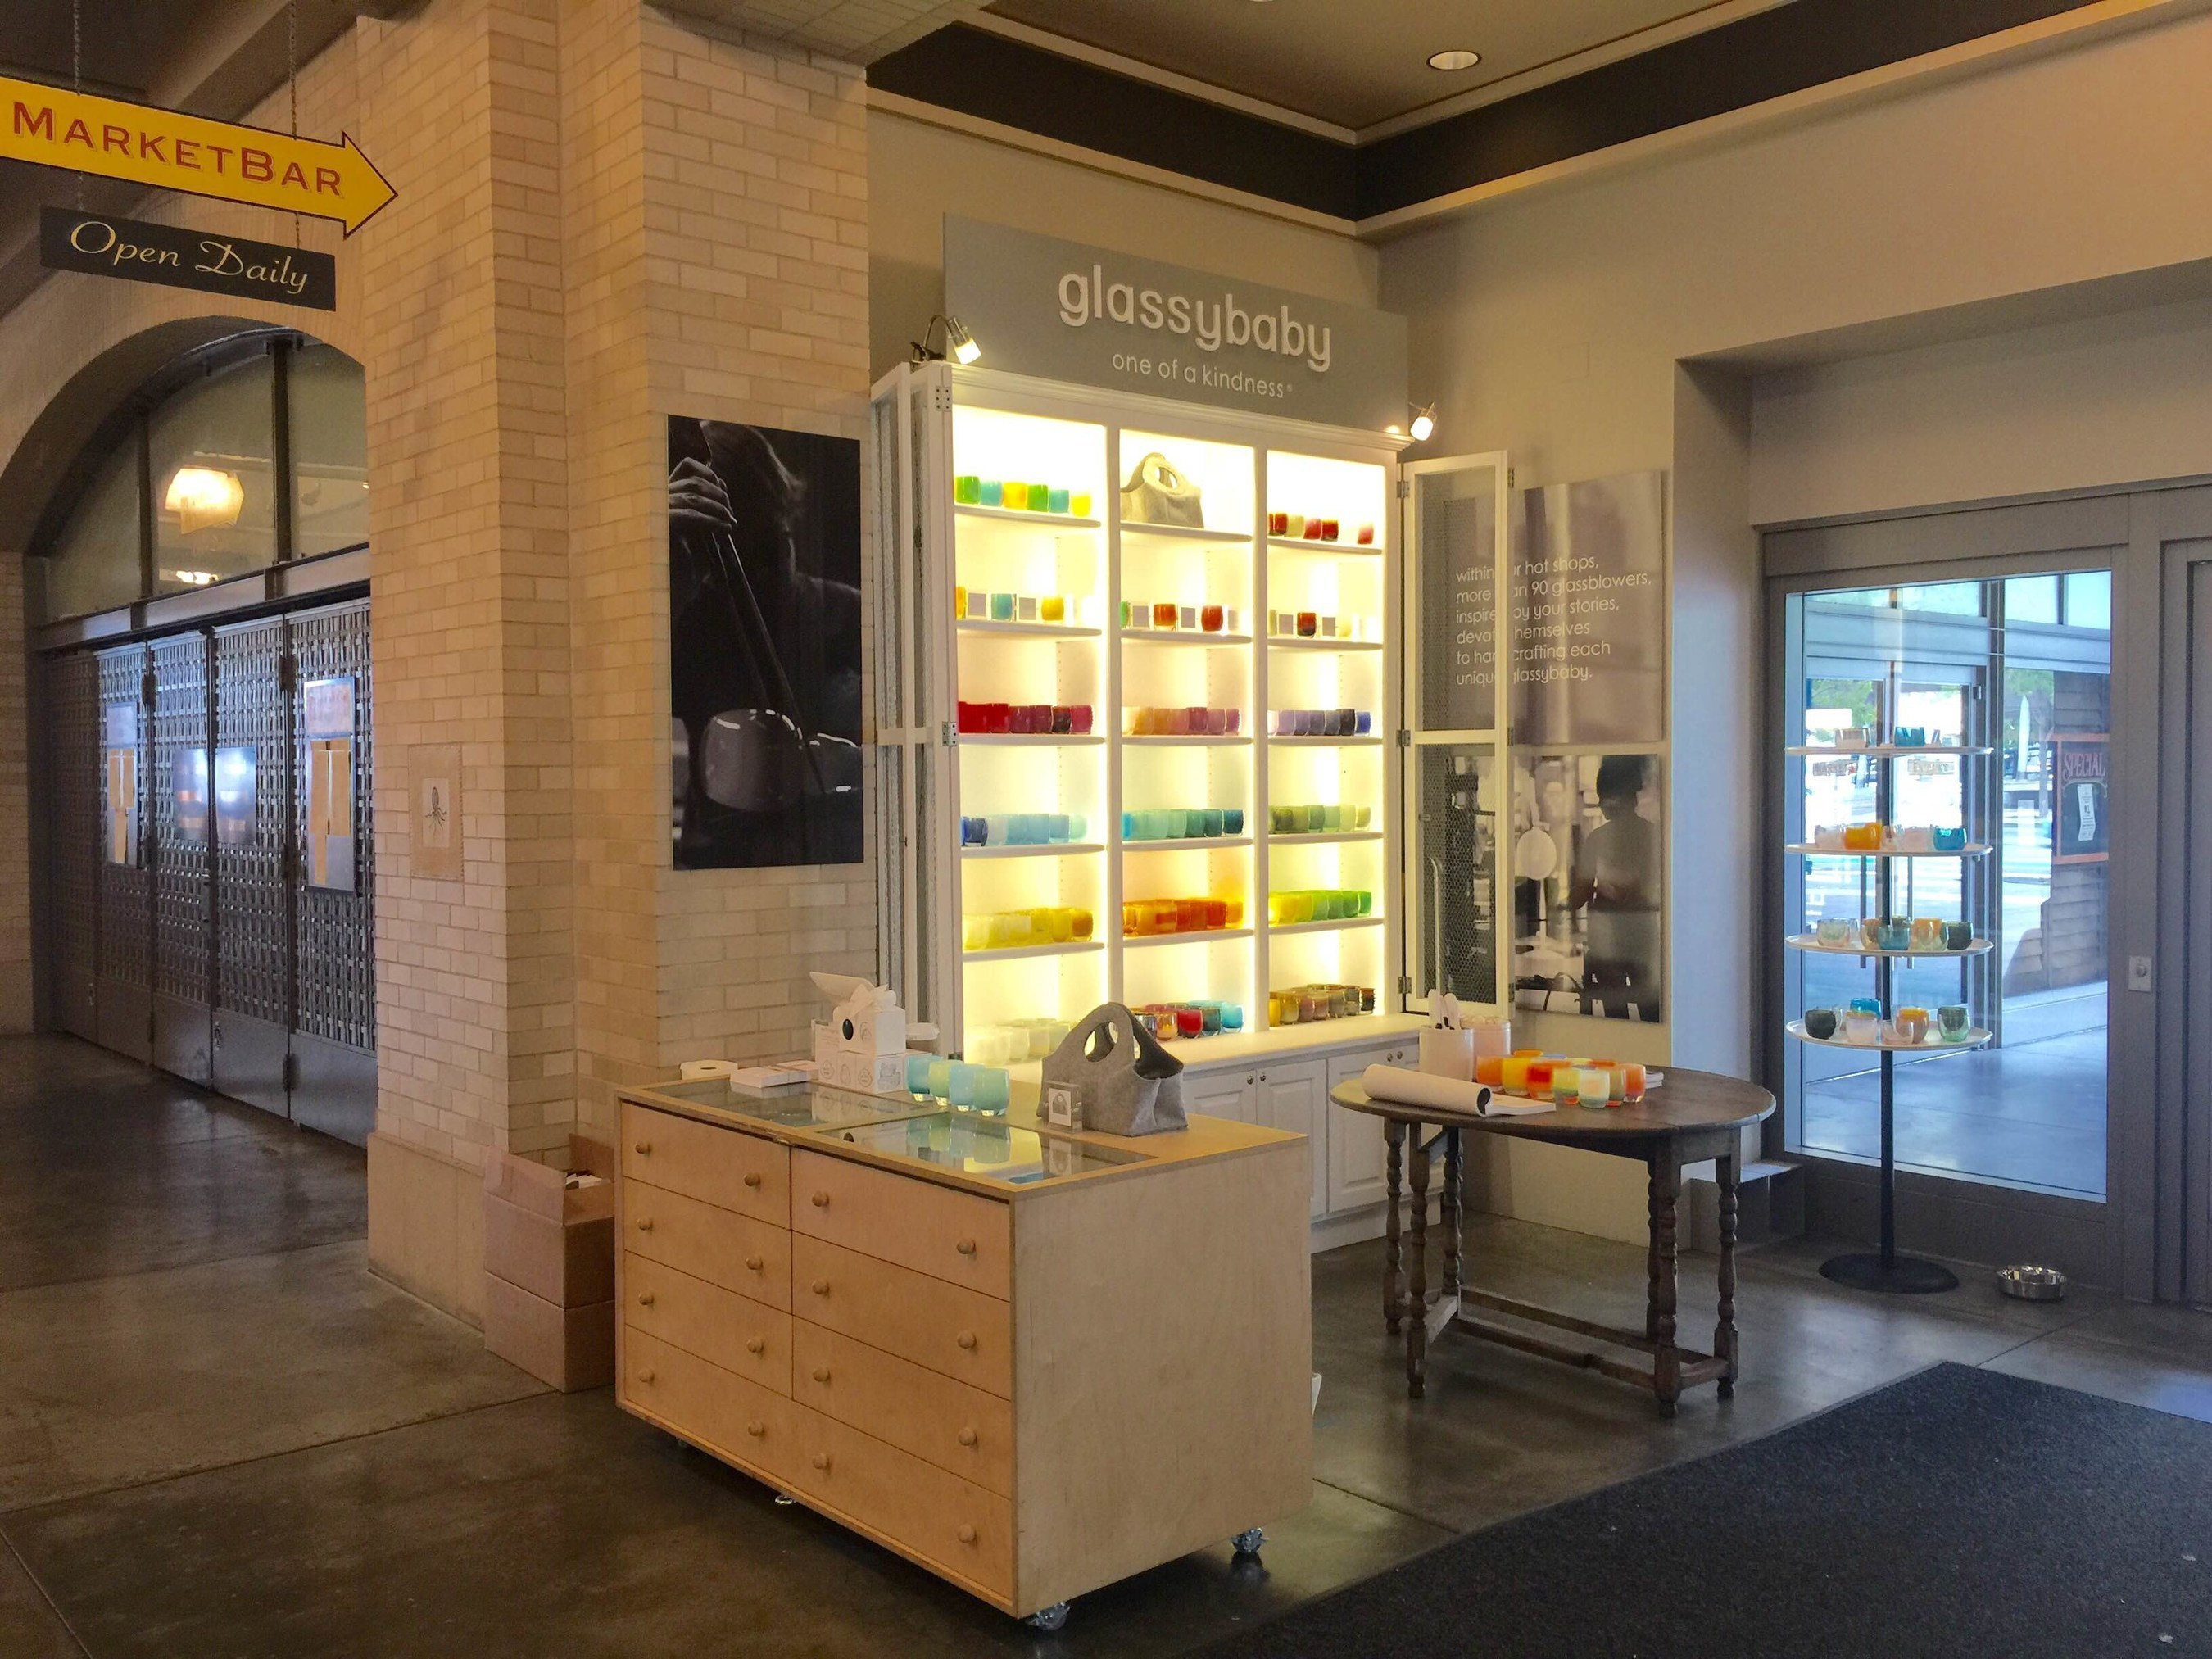 glassybaby, maker of handmade glass votive candleholders and drinkers opens third Bay Area store in San Francisco's historic Ferry Building. Ten percent of all sales of glassybaby products are donated to causes that heal.